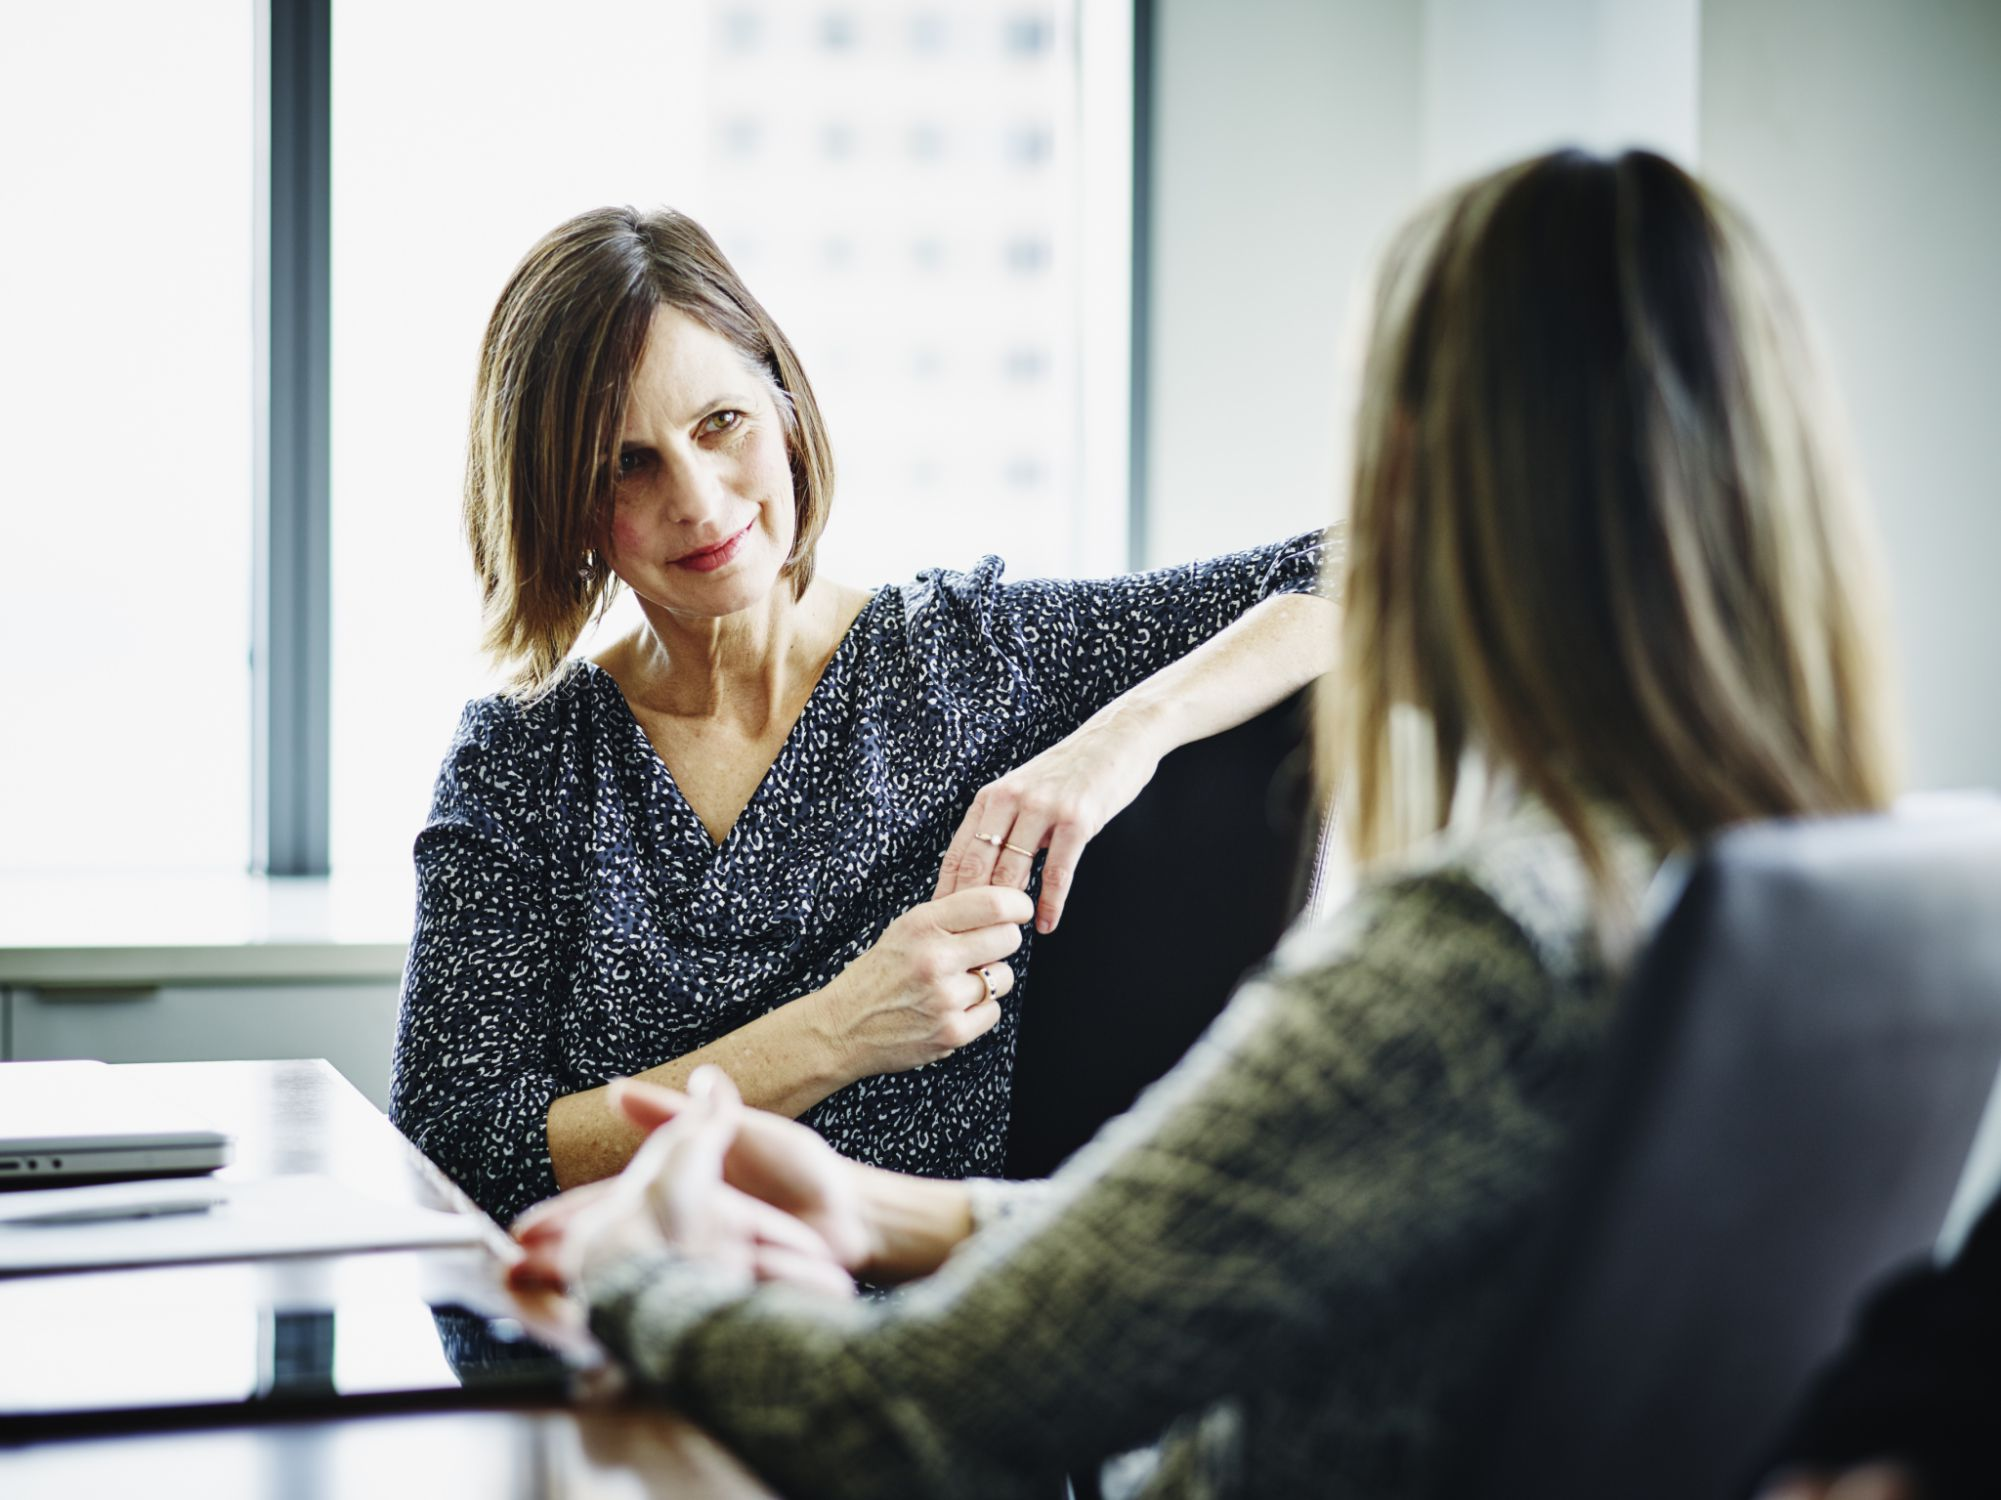 interview questions about your salary expectations - What Are Your Expectations For The Job What Is Your Expected Salary